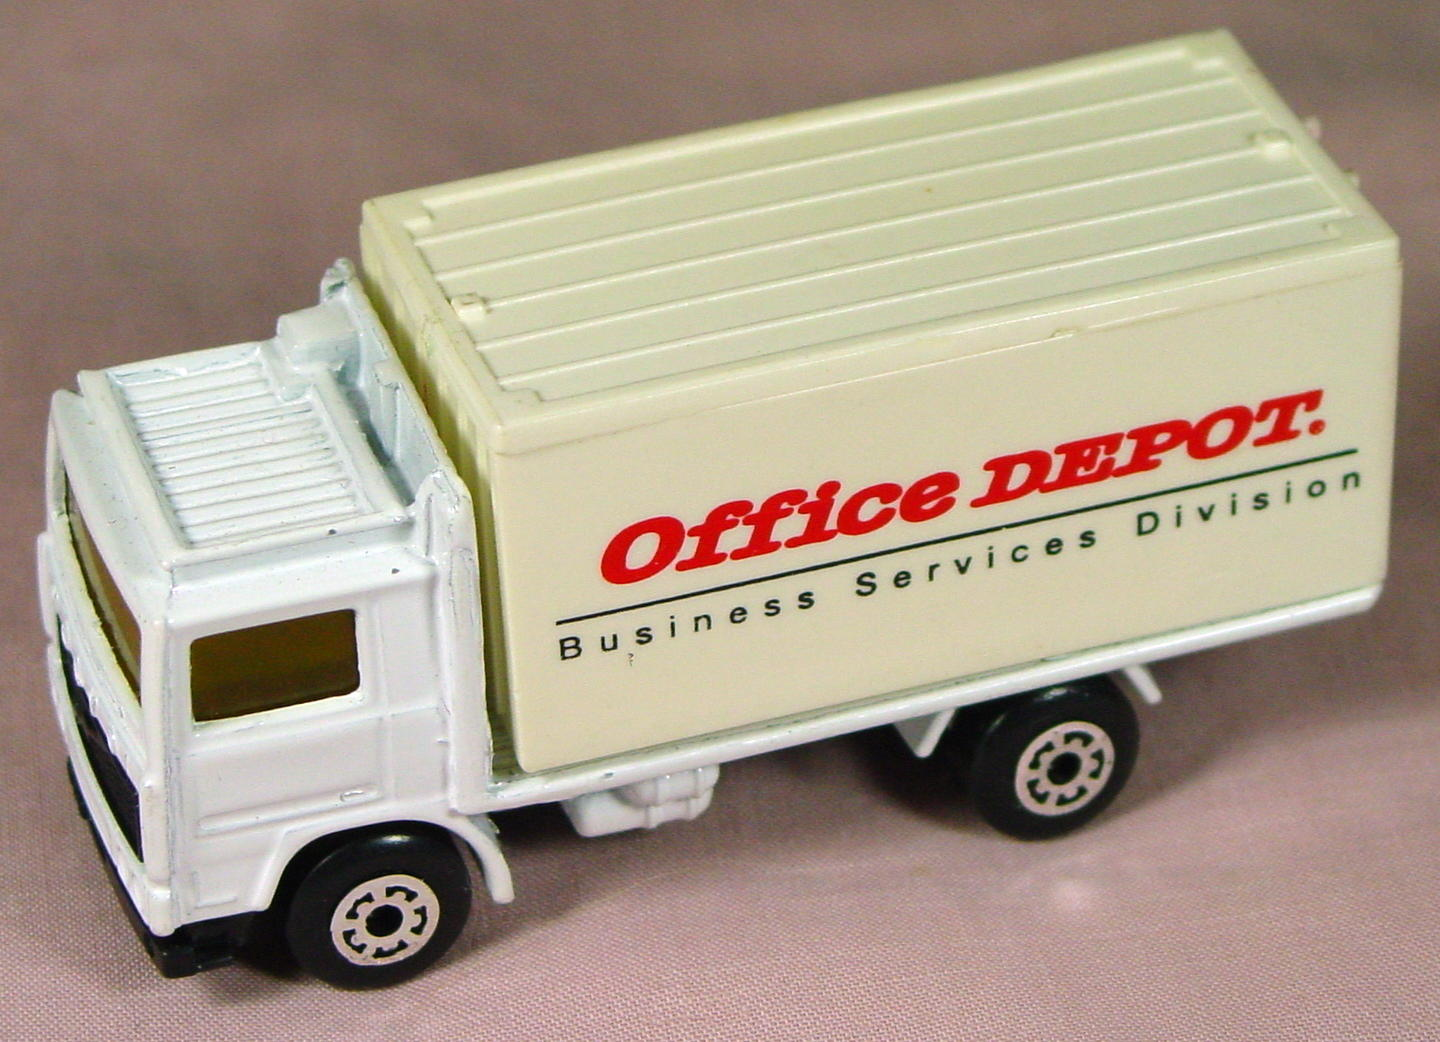 ASAP-CCI 20 D 66 - Volvo Cont Truck White and White Office Depot made in China ASAP